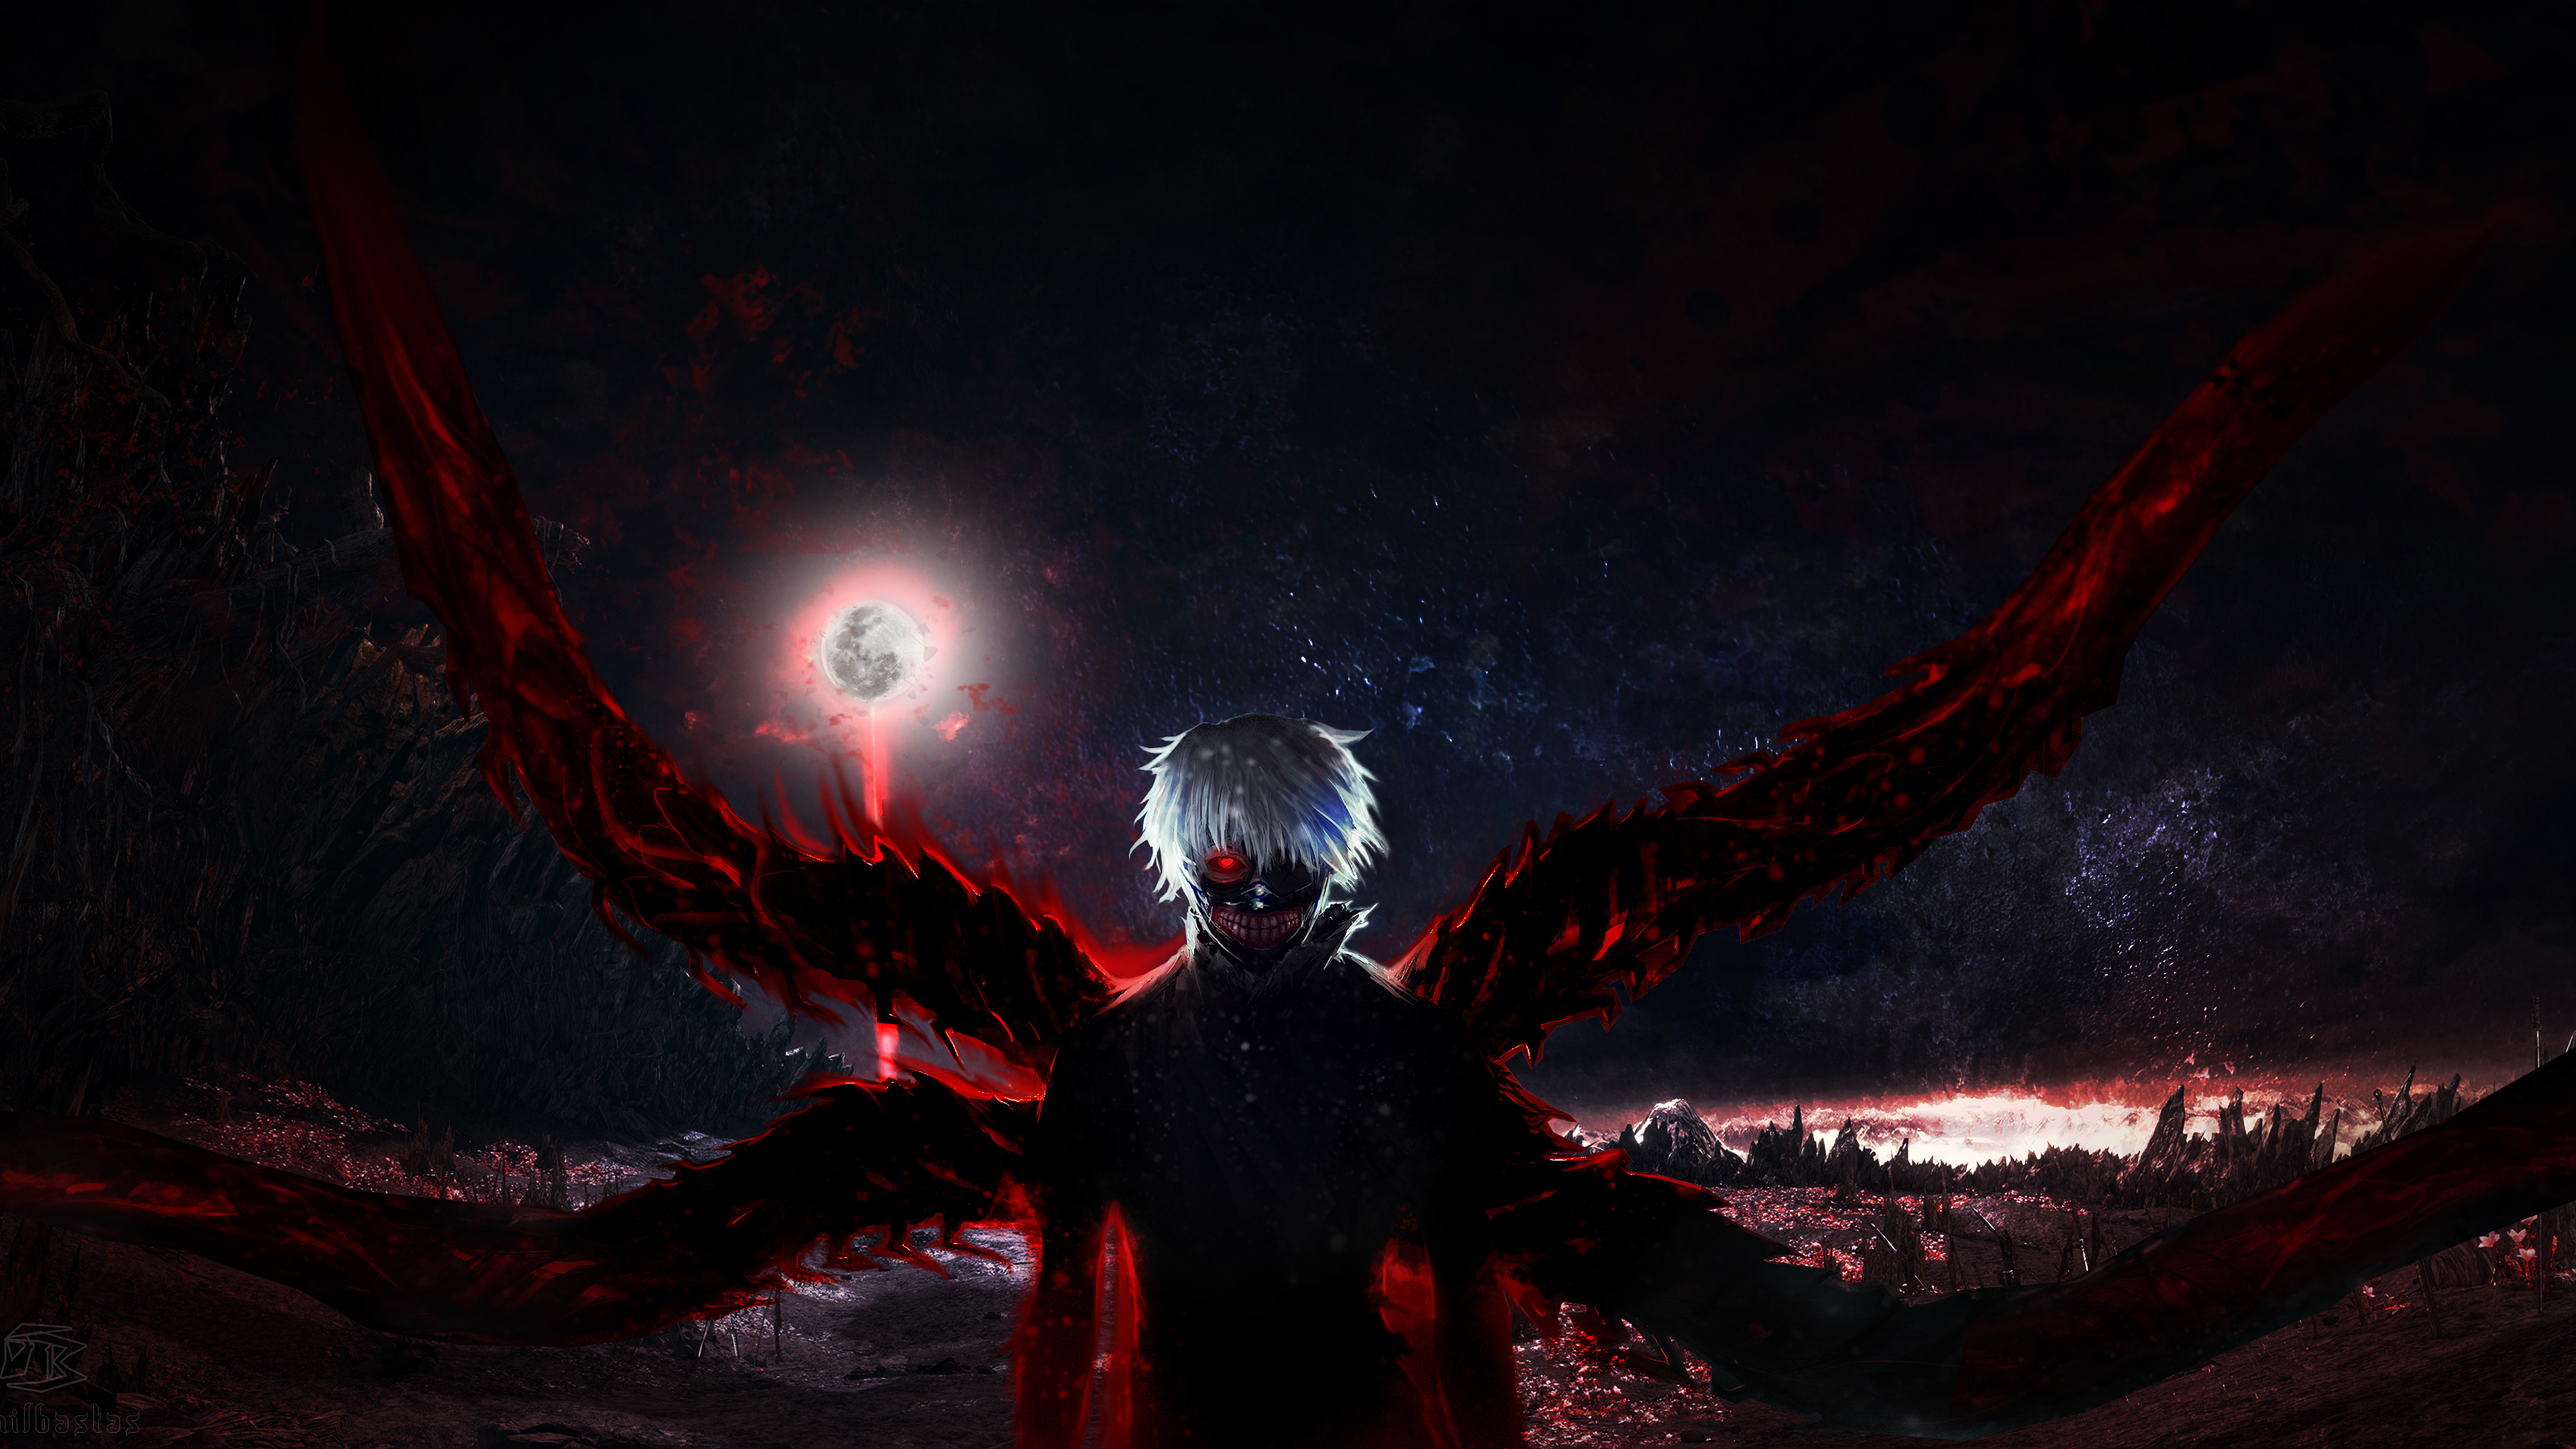 Tokyo Ghoul 4k, HD Anime, 4k Wallpapers, Images ...